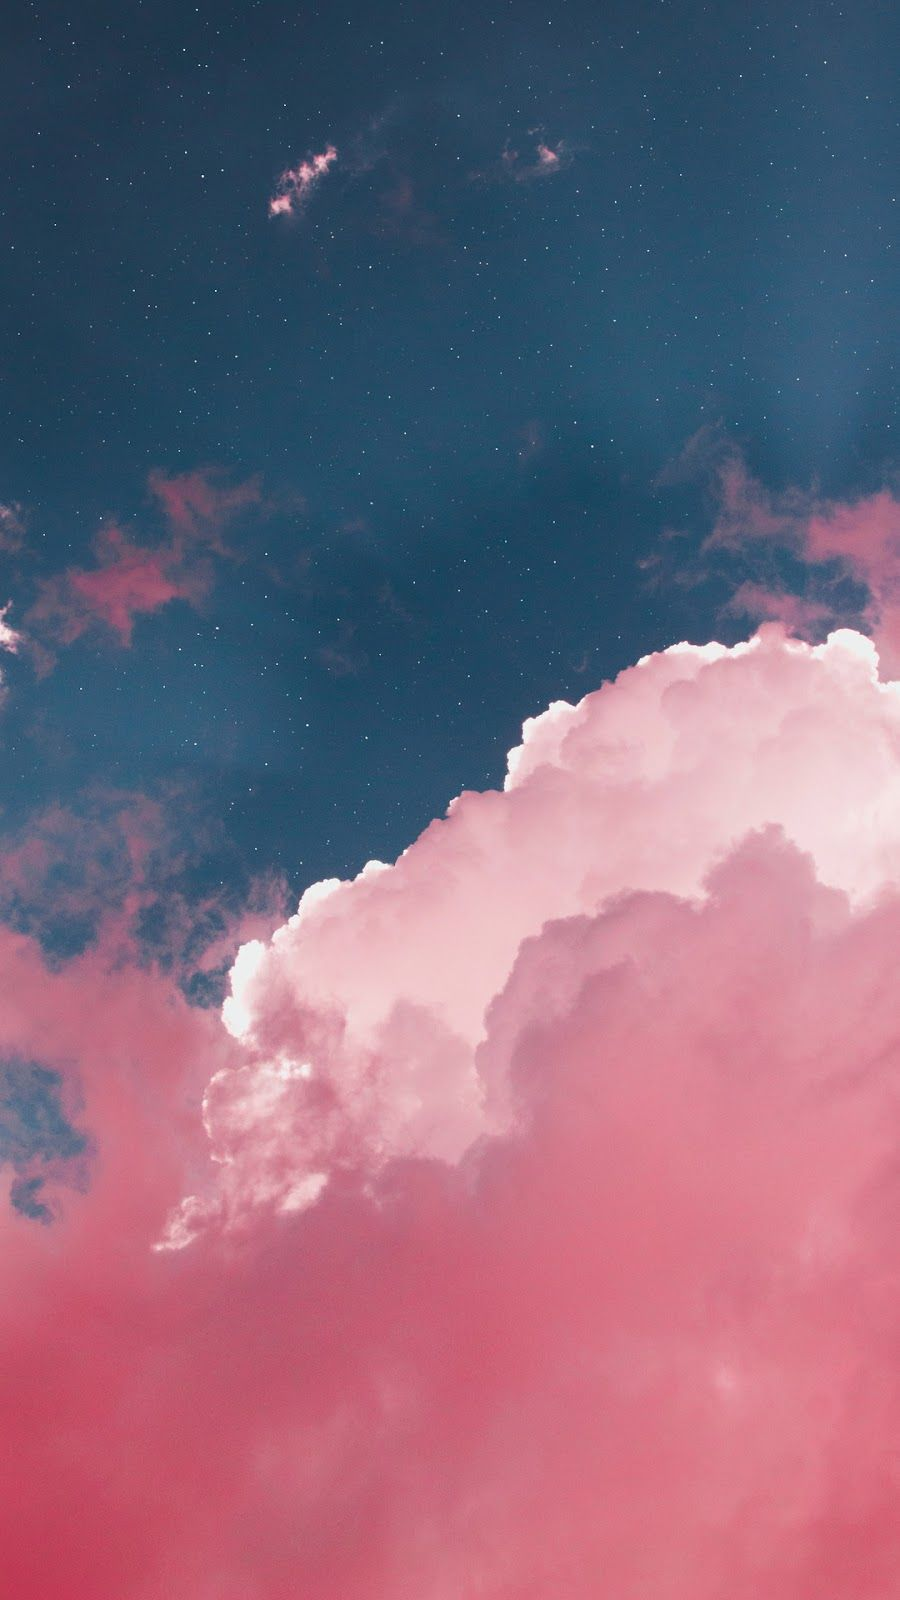 Pink Cloud Wallpaper Wallpaper Iphone Android Background Followme Pink Wallpaper Backgrounds Pink Clouds Wallpaper Cloud Wallpaper